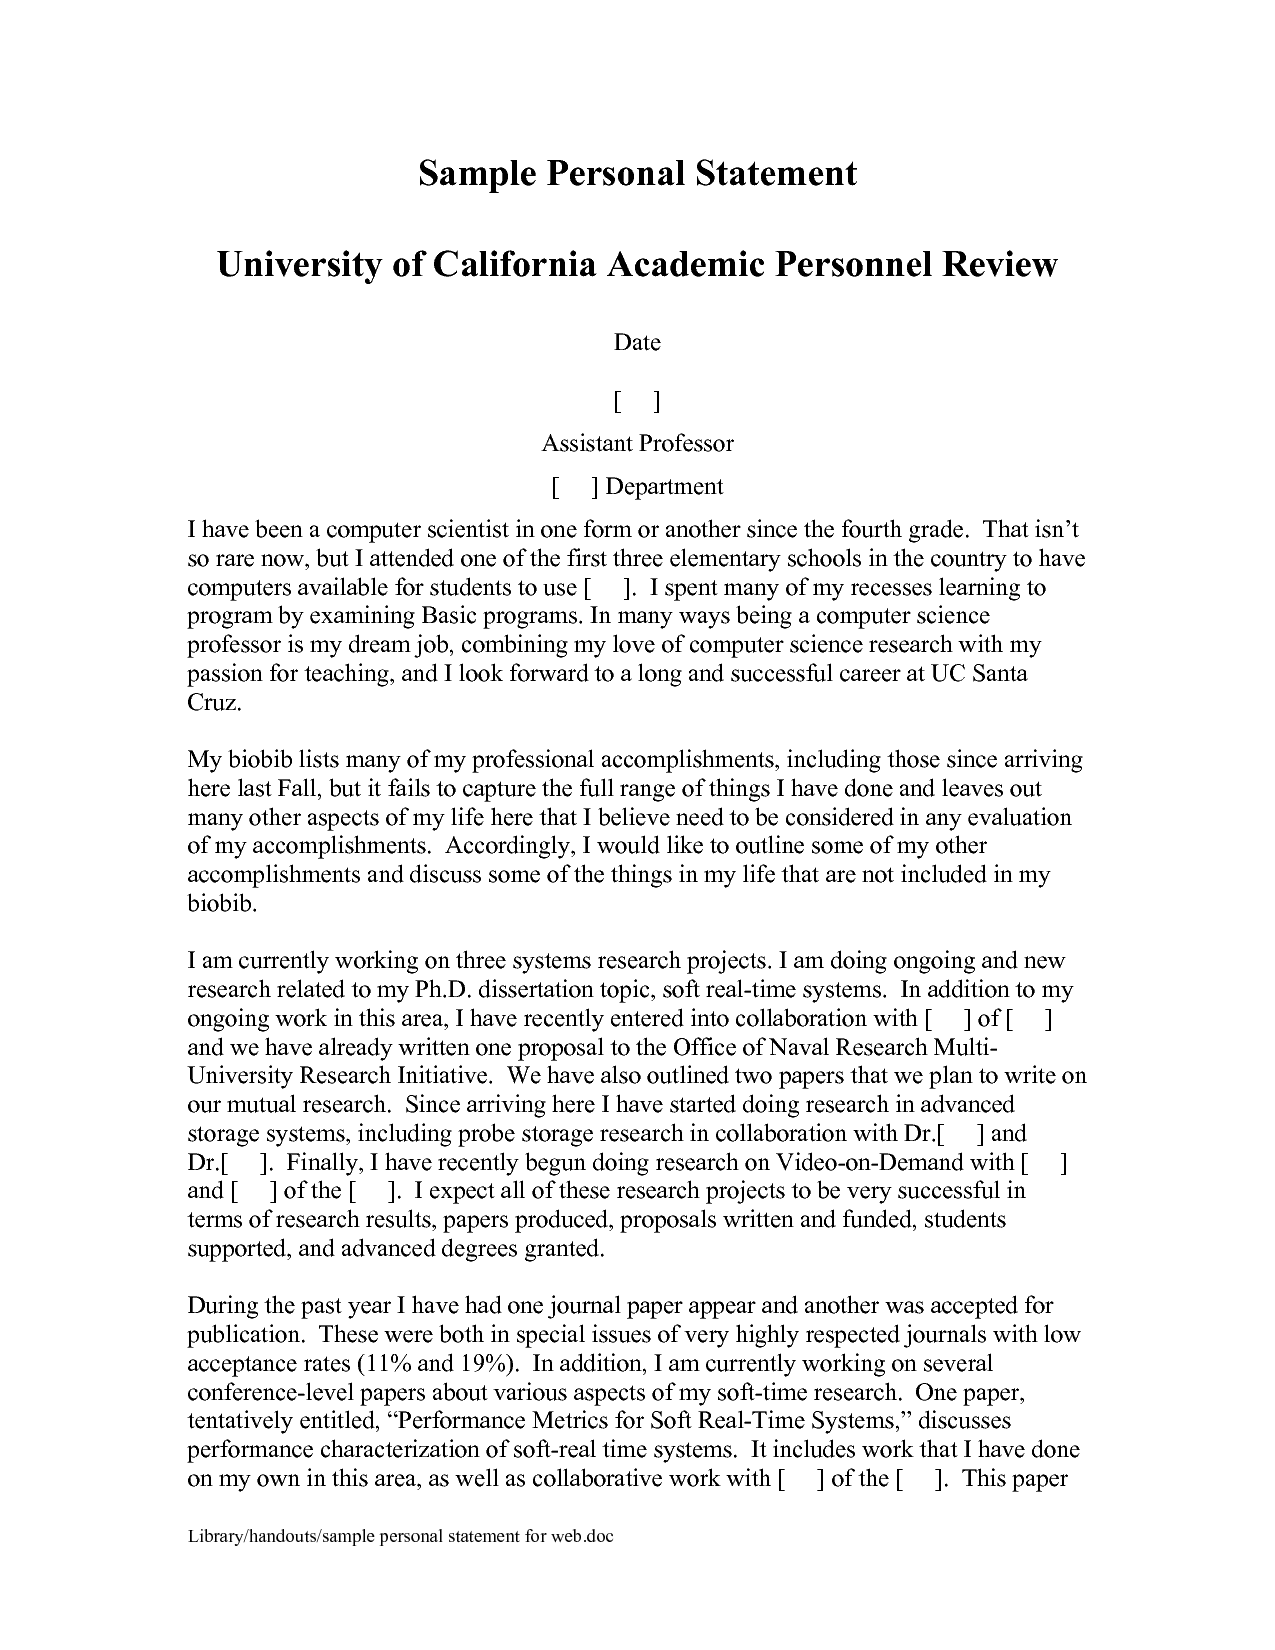 007 Essay Example On Diversity Graduate Personal Statement Template Breathtaking For College Admission Regional In India Indian Culture Full